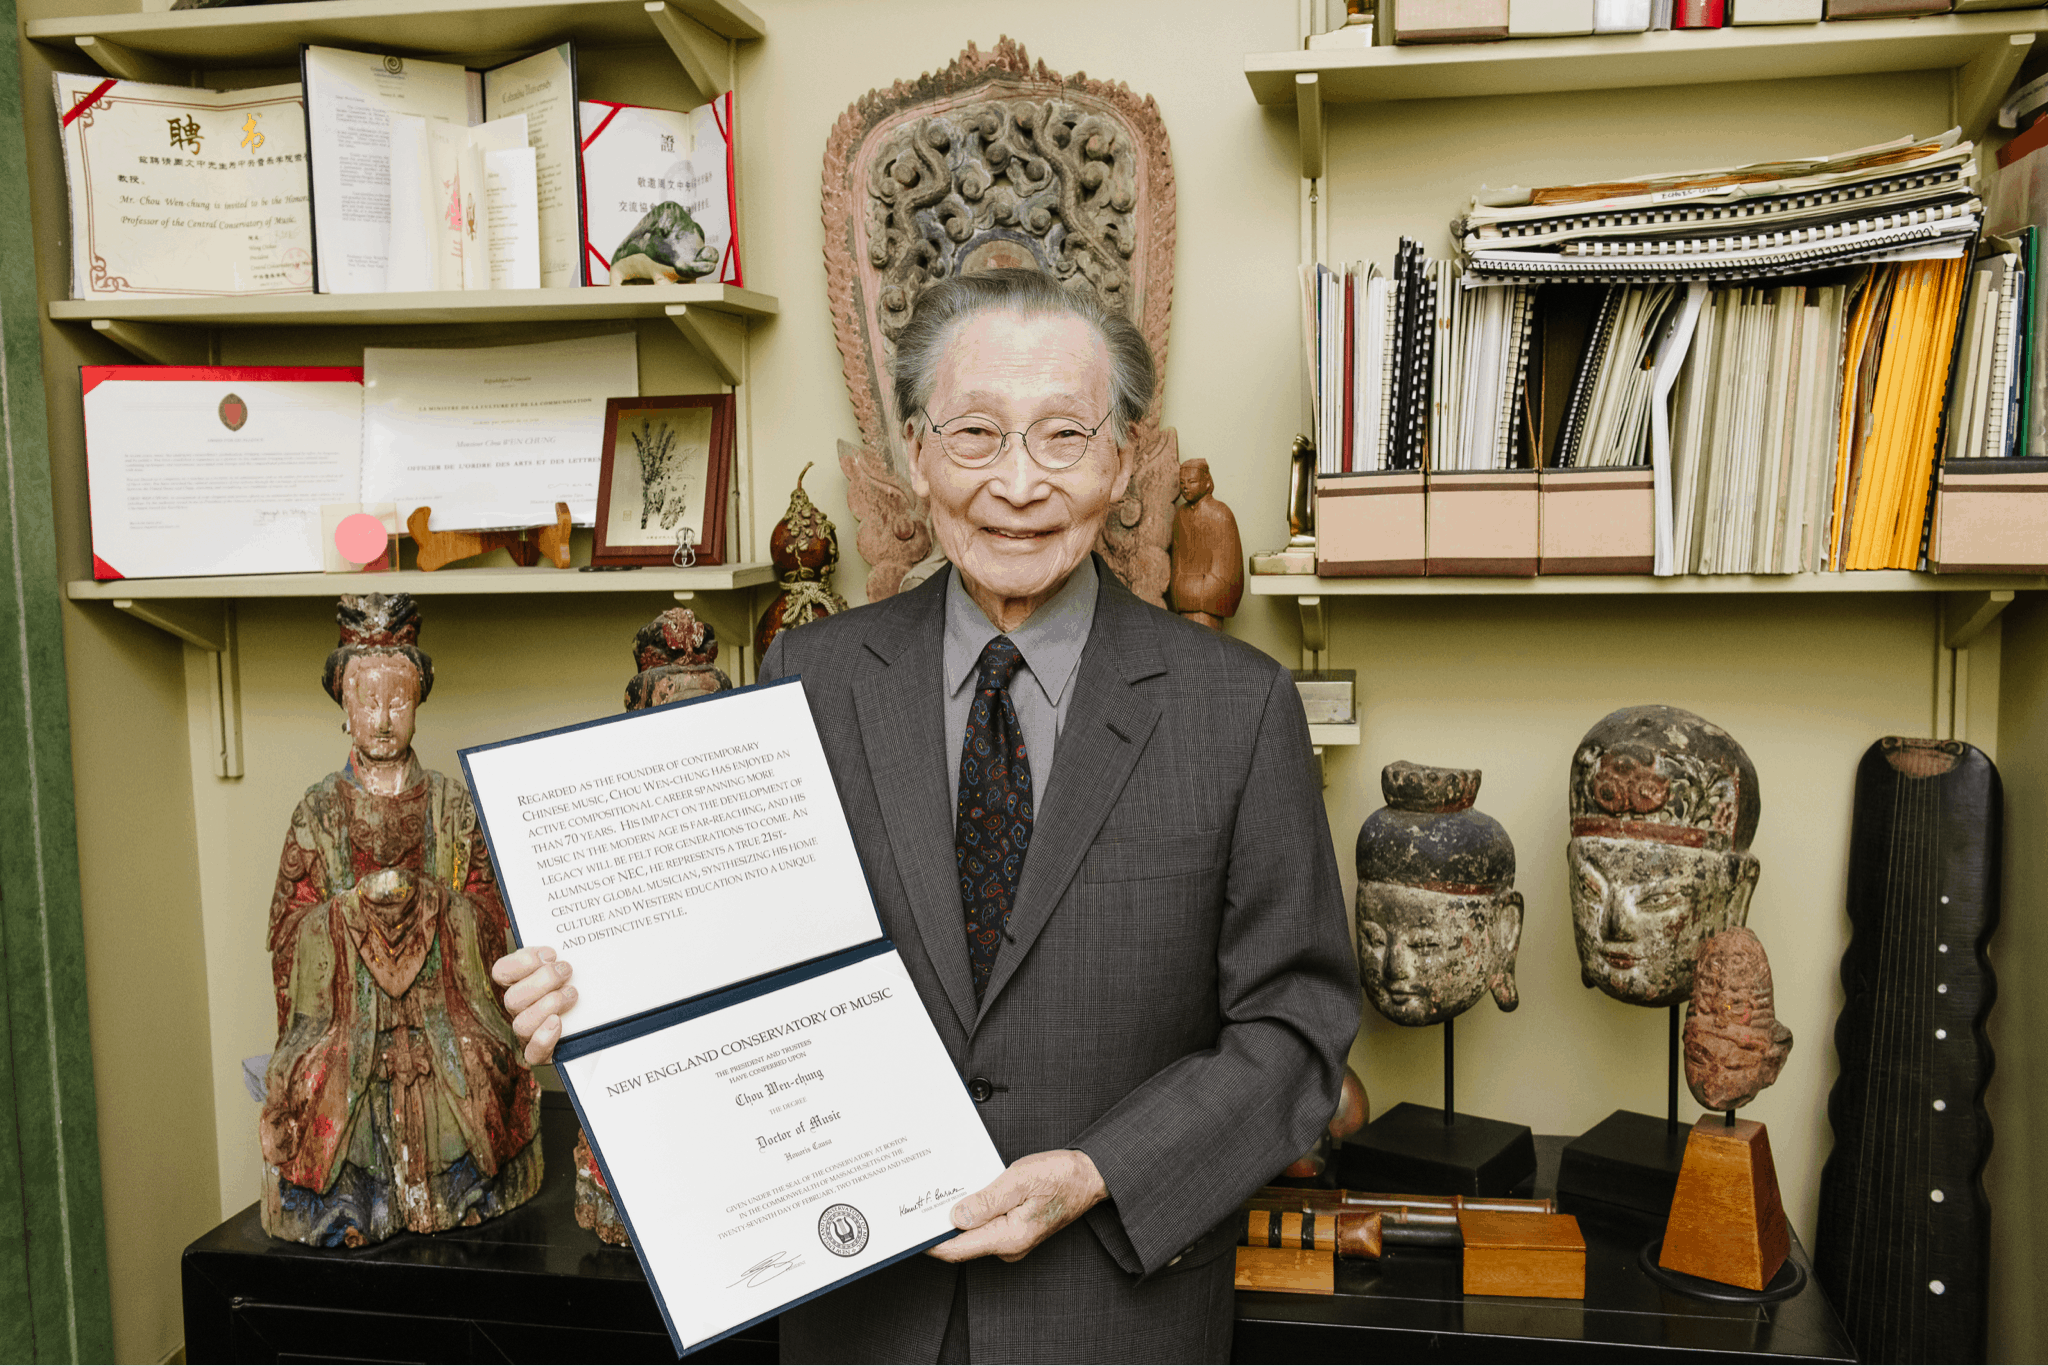 Chou Wen-chung with honorary doctorate (Photo by Fadi Kheir, on behalf of New England Conservatory)